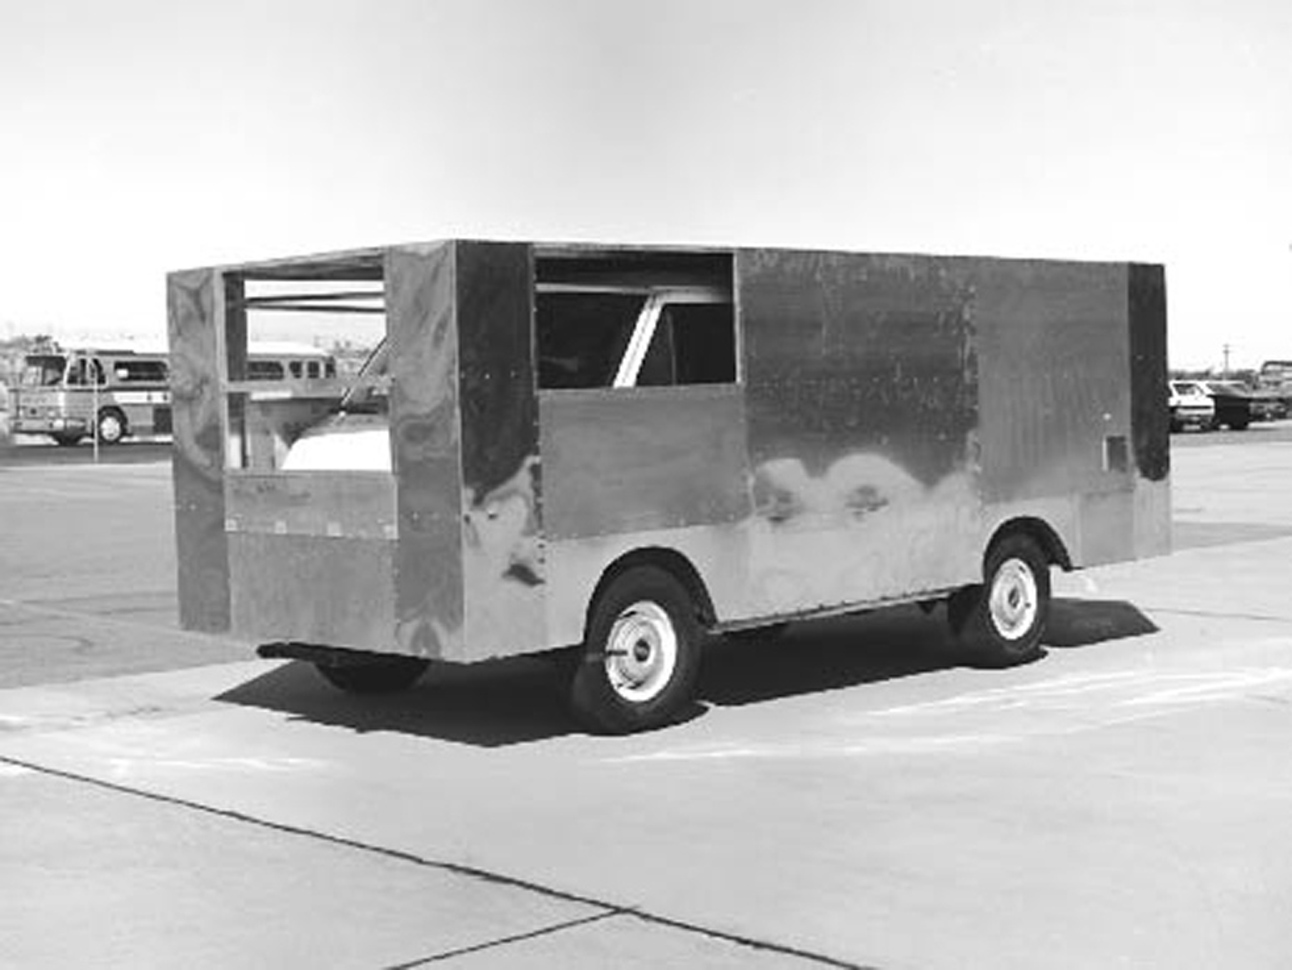 Dryden engineers modified a retired delivery van to test aerodynamic